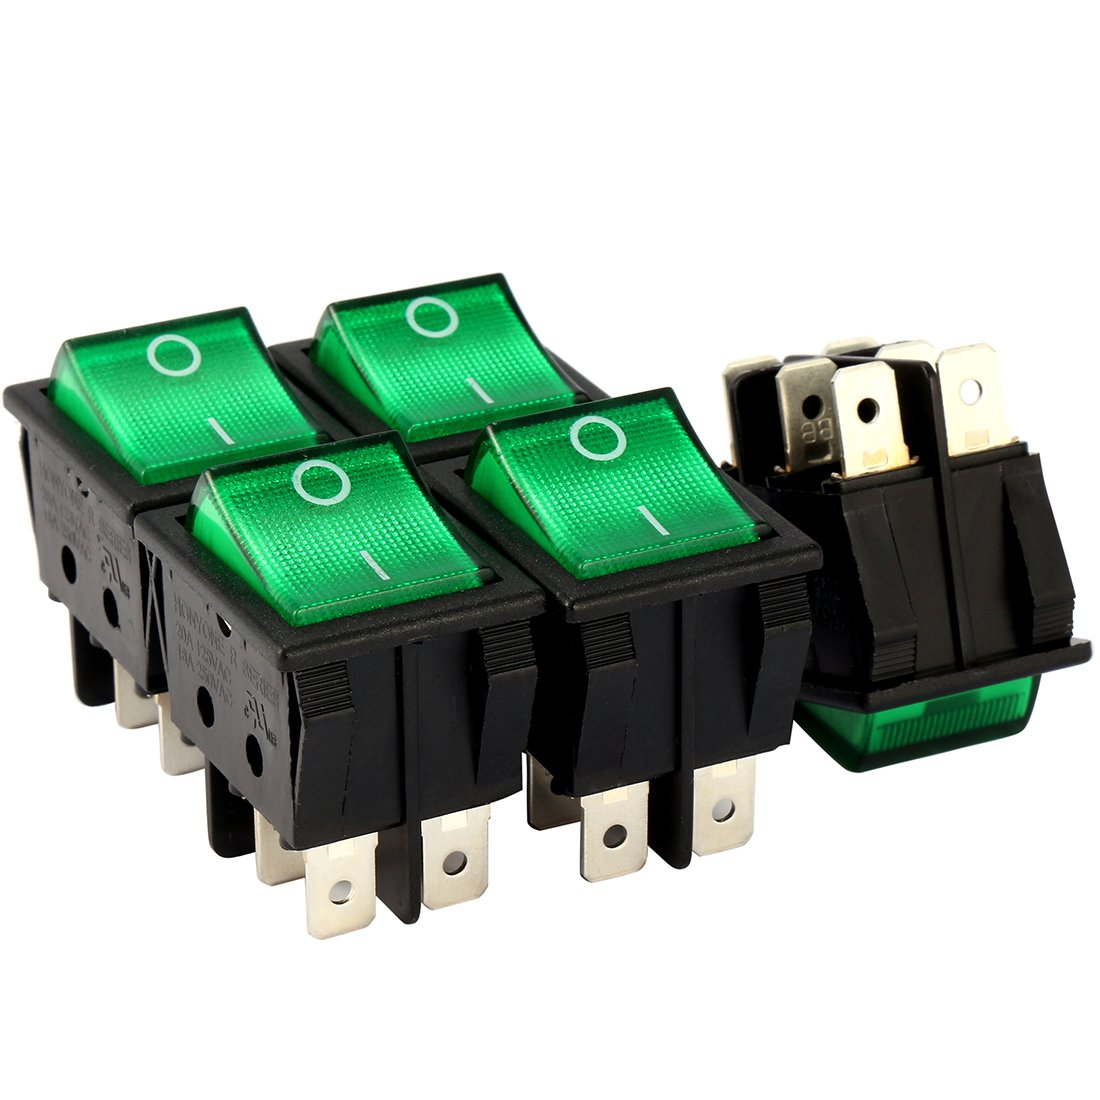 Aexit 5Pcs AC Winch Accessories 20A/125V 16A/250V DPDT 6P 2 Position Green LED Light Boat Rocker Switch Switches UL Listed